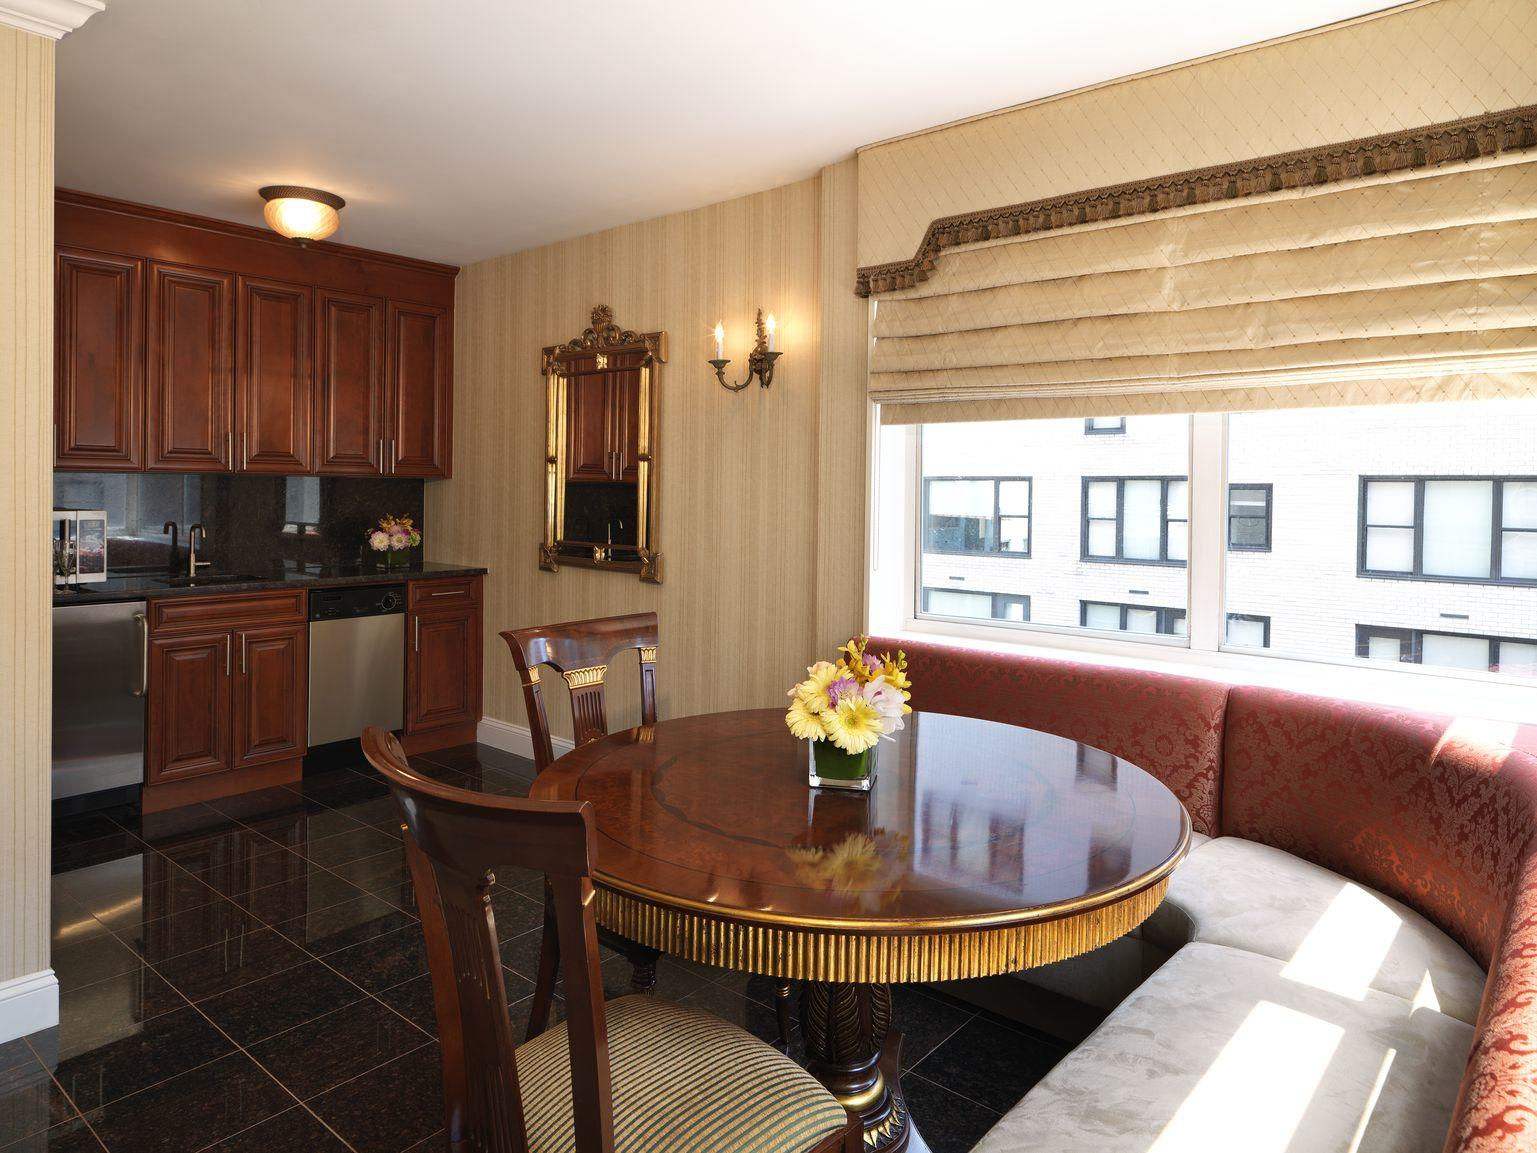 Suite Executive con zona de comedor